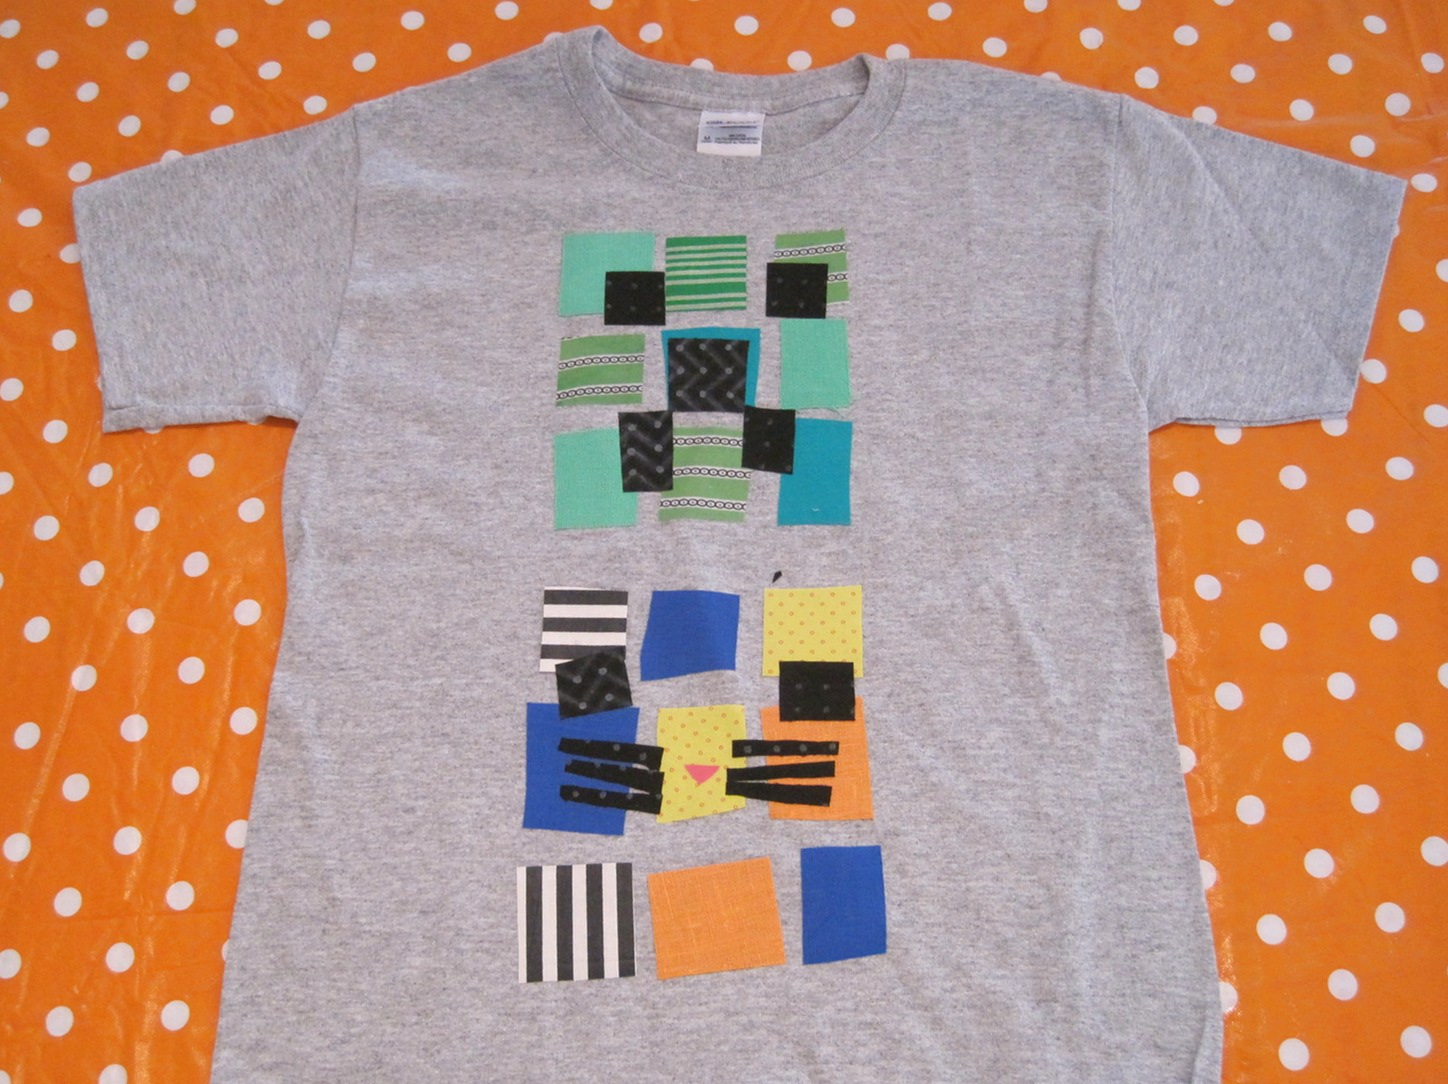 Minecraft T-shirt Design-ages 6 andup -  Design your own unique Minecraft t-shirt using